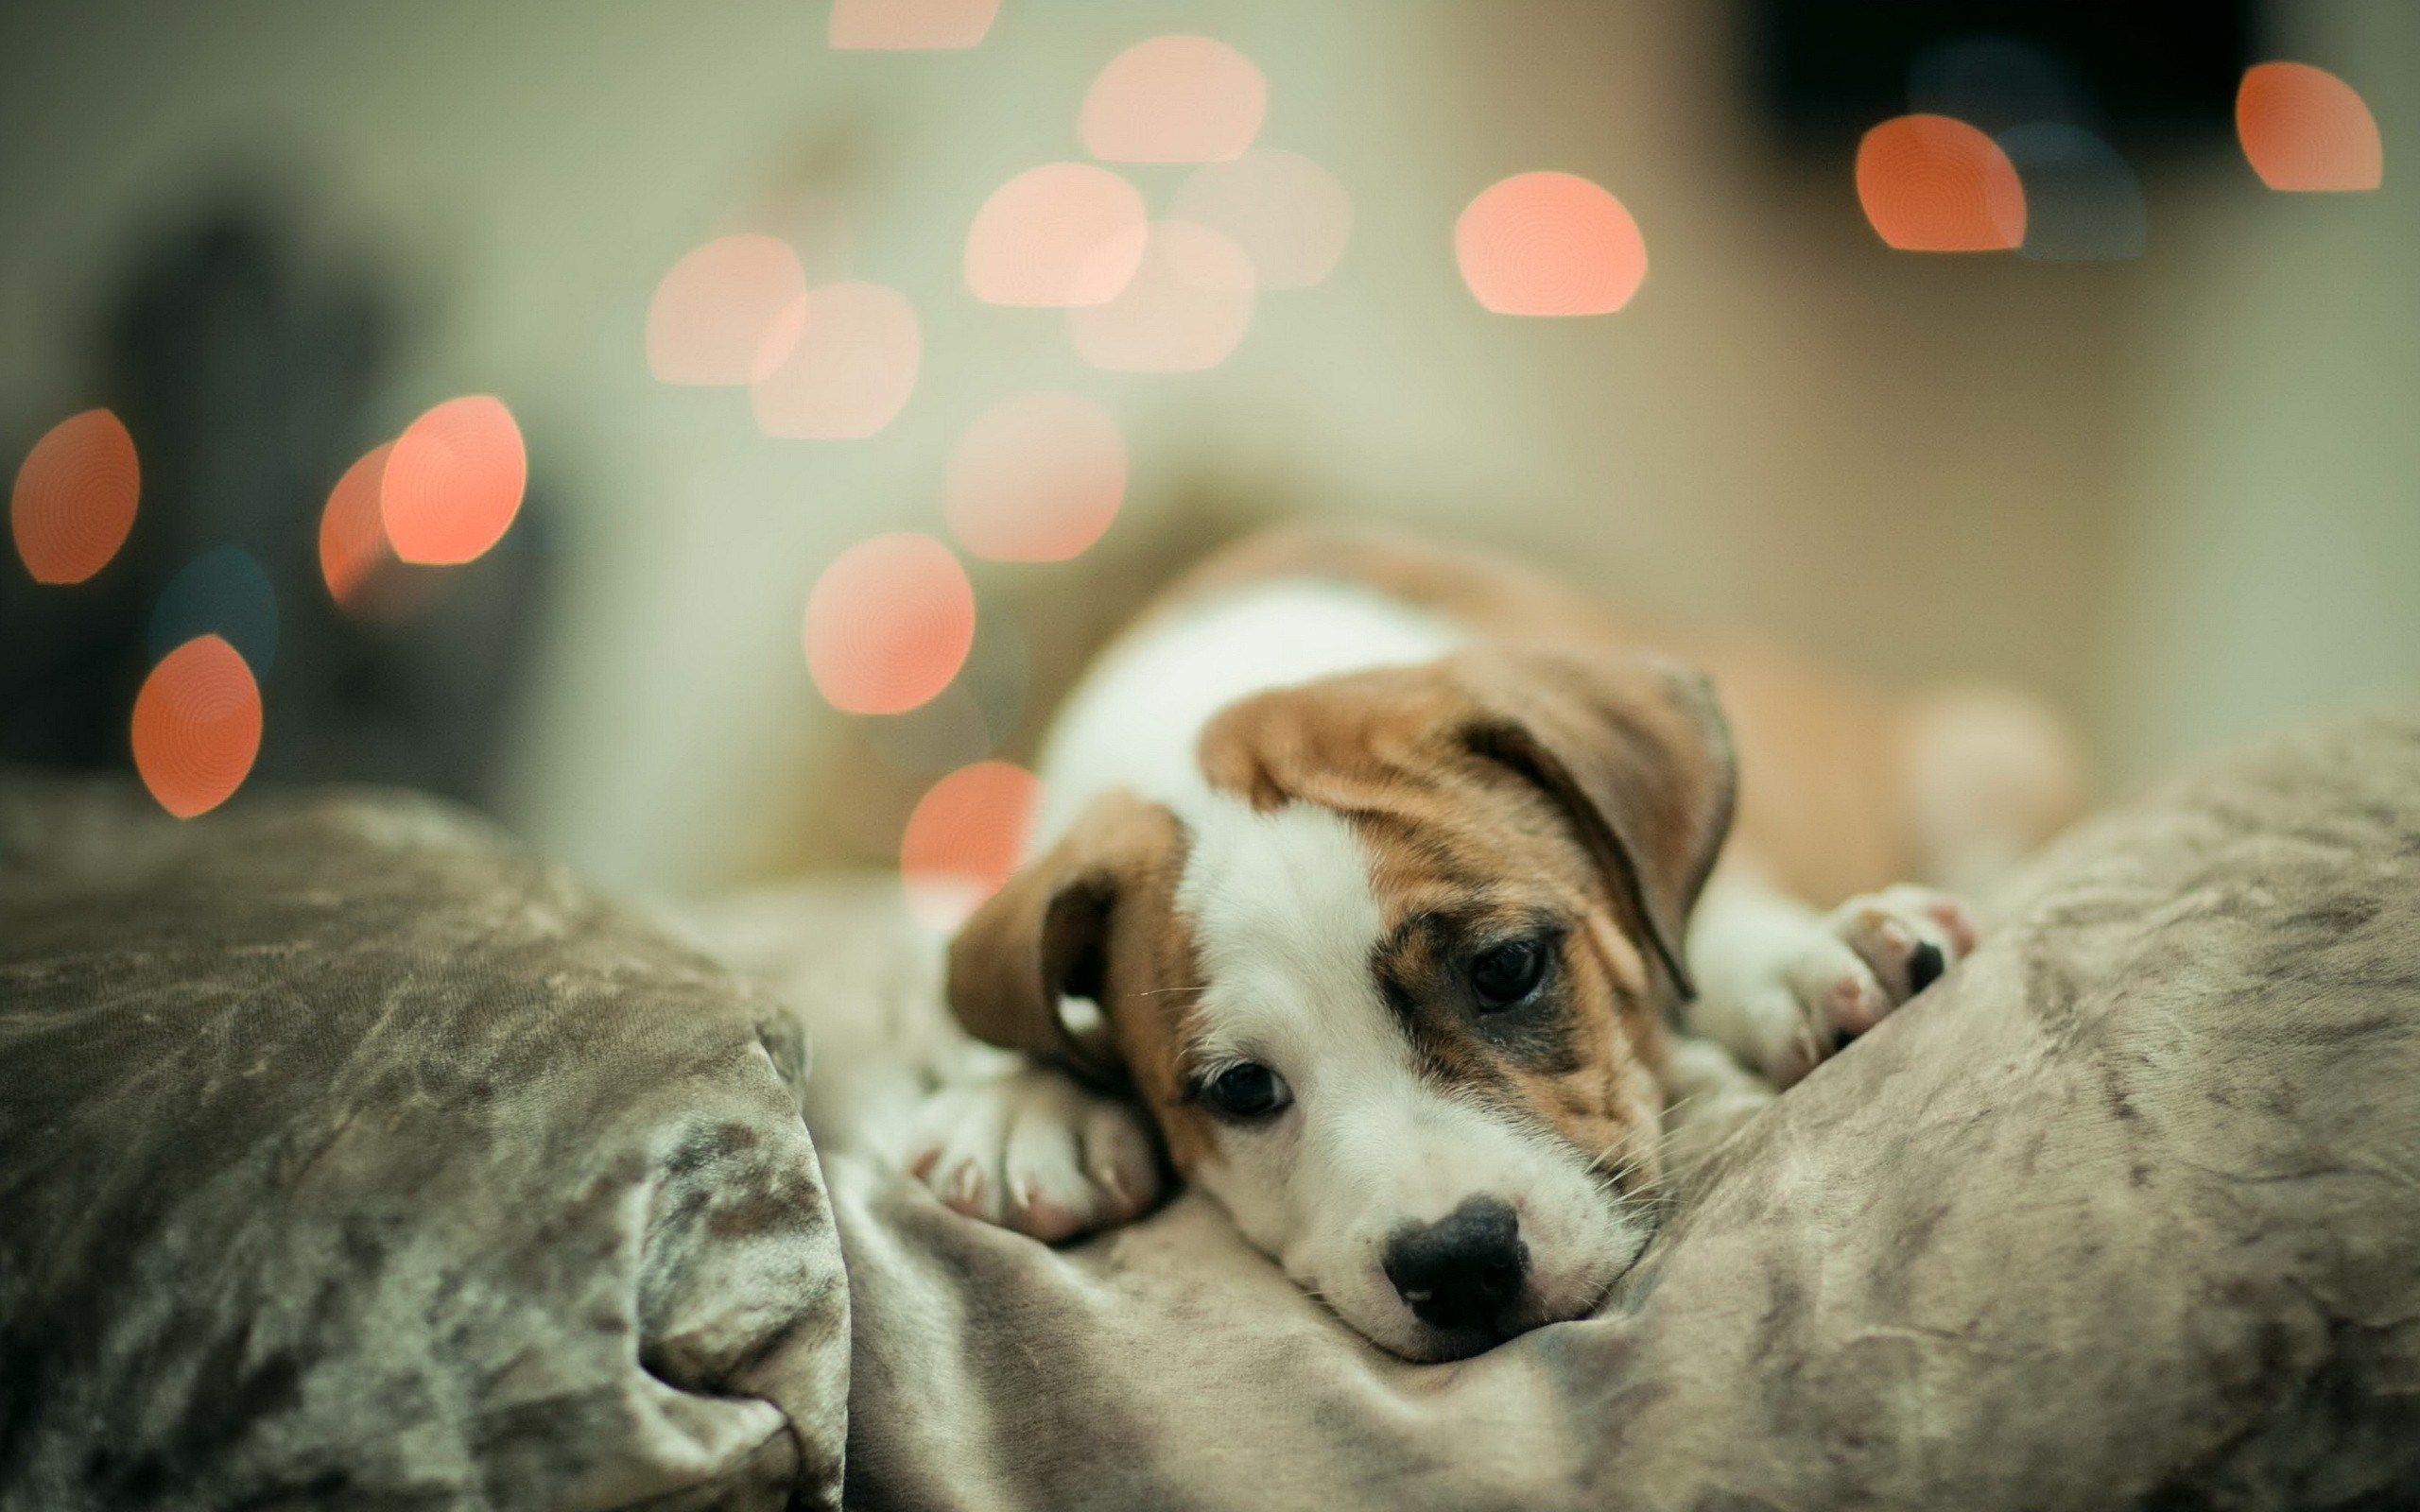 Hd wallpaper dog - This One Is Like The Perfect Example Of A Cute Dog Wallpaper